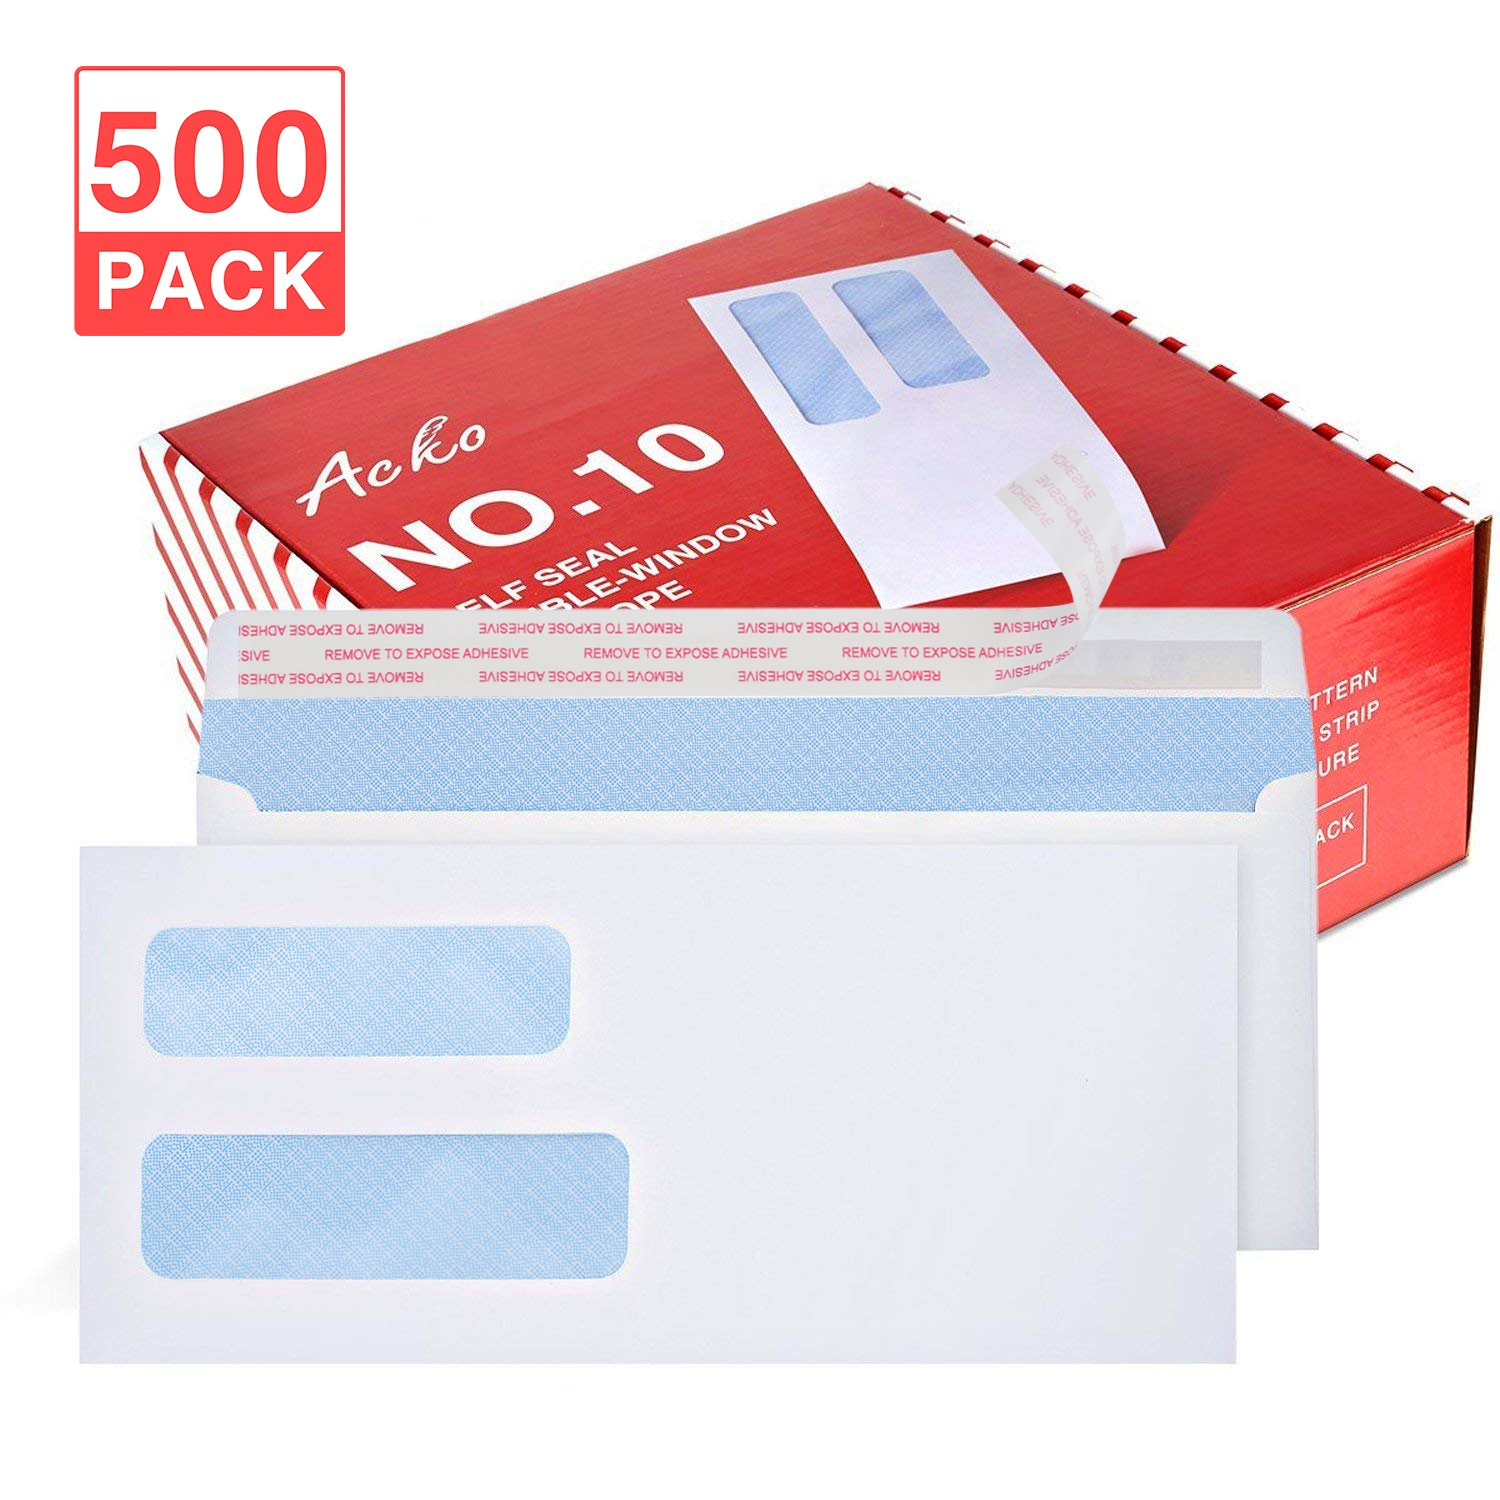 Acko #10 500Pack Double Window Envelopes Quick-Seal Closure Envelopes 4 1/8 x 9 1/2, Security Tint Pattern Designed for Home Office Secure Mailing, Letters and Invoices - White Envelopes 500 Count 00065